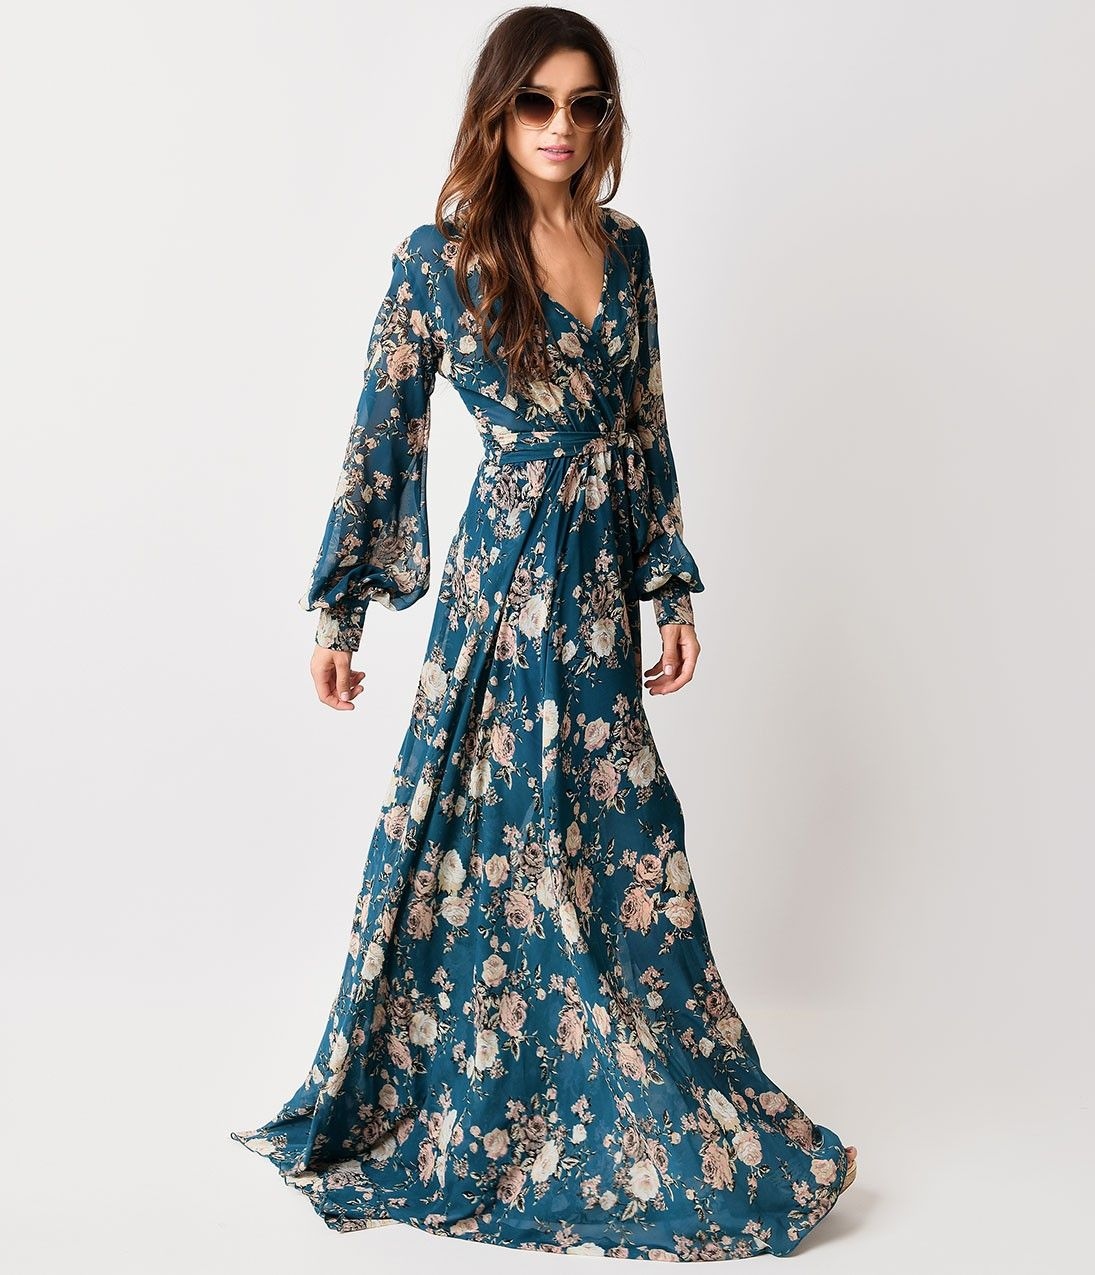 s Style Teal Rose Floral Long Sleeve Maxi Dress Shopping Is My